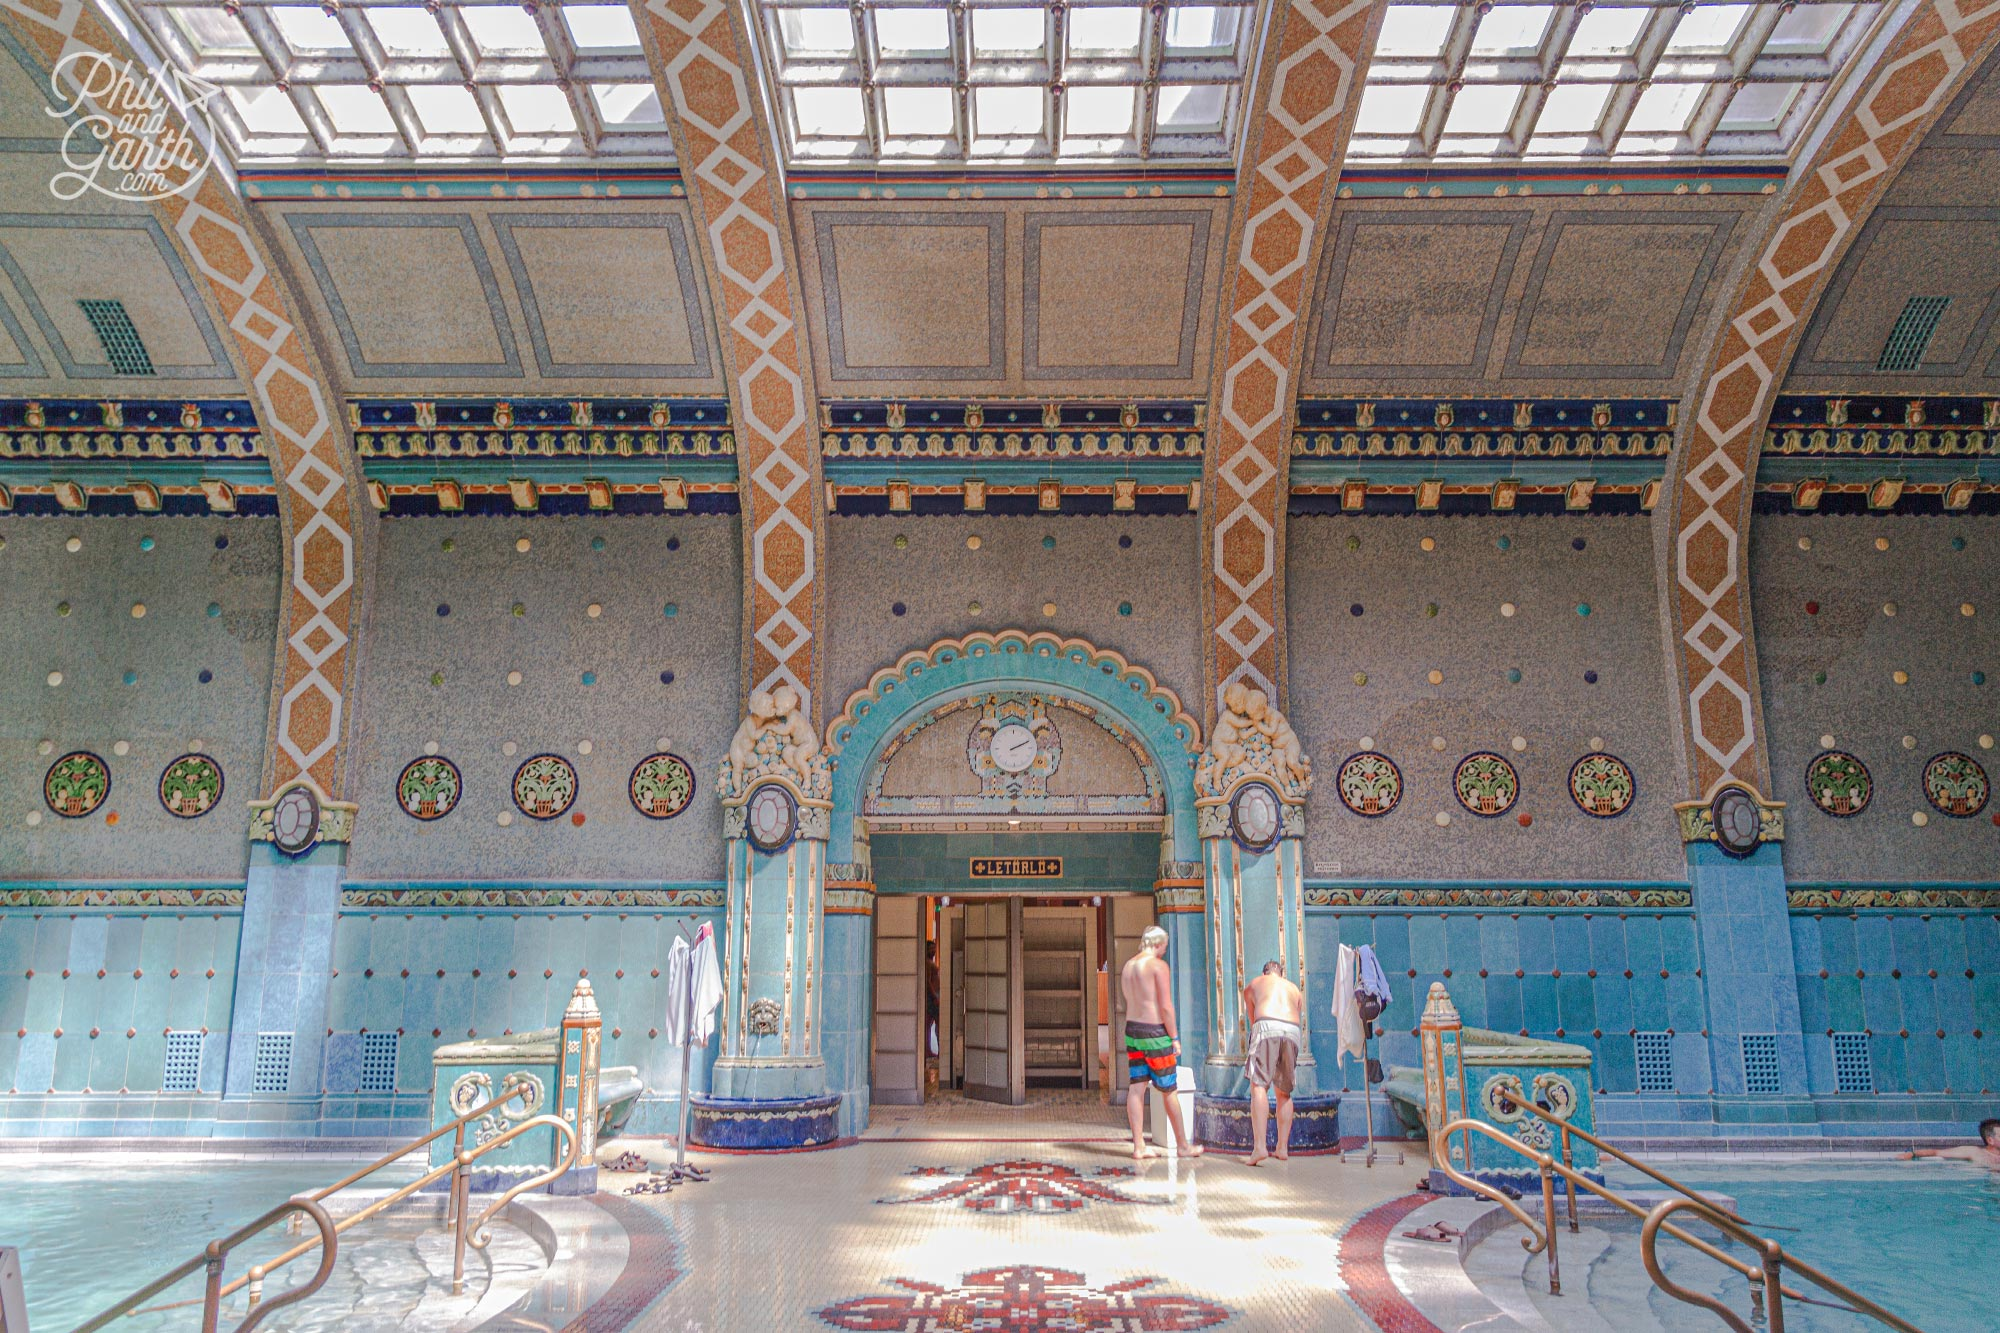 The Gellért Baths was built between 1912 to 1918